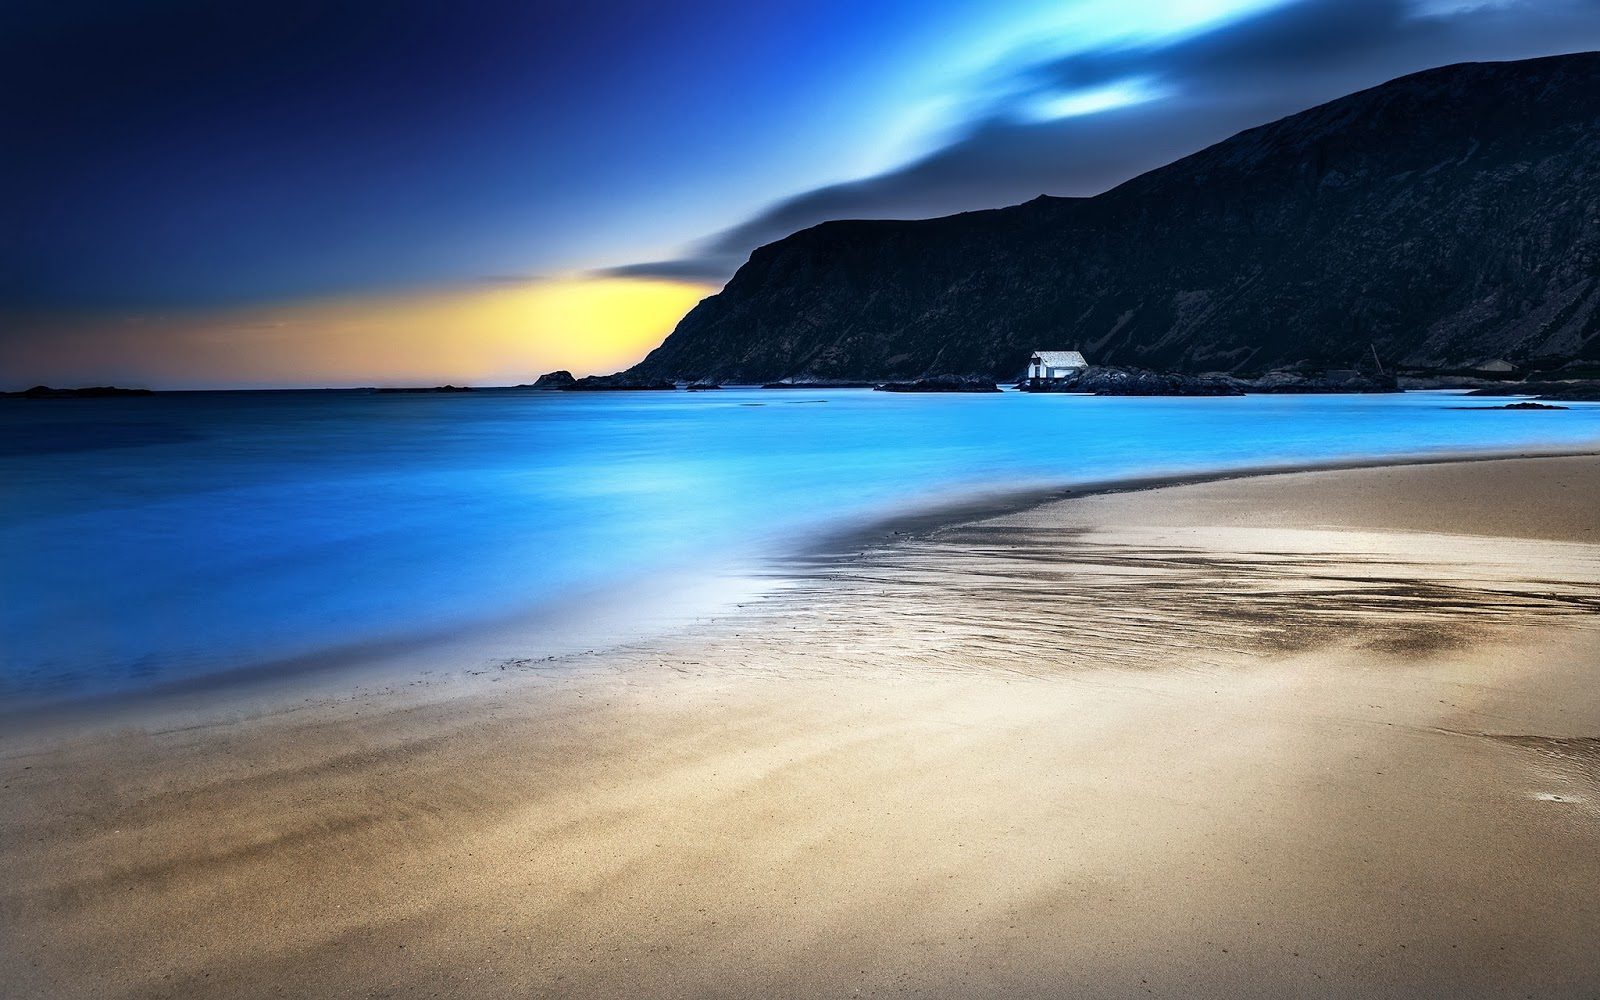 Blue Night Beach Beautiful Nature Images And Wallpapers